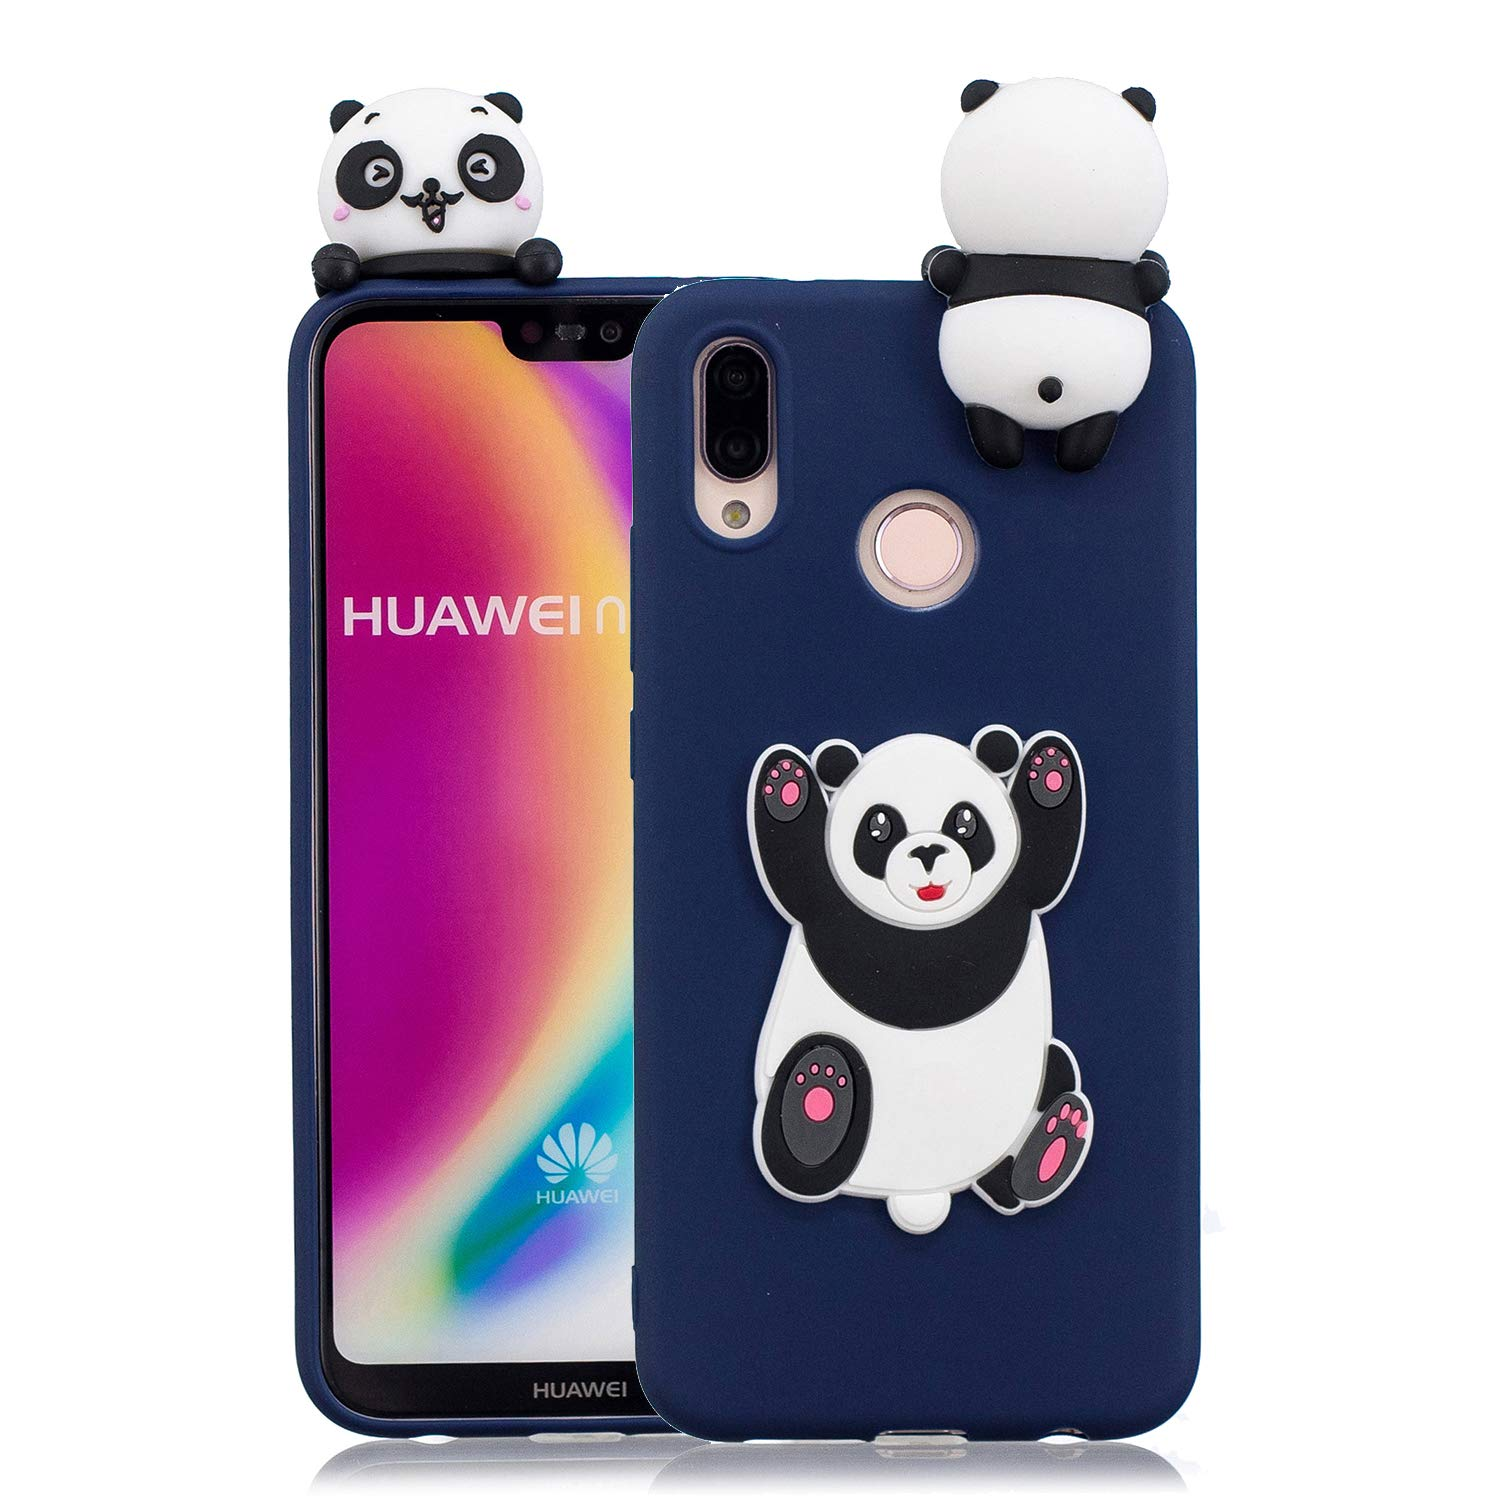 3D Cartoon Animal Case for Xiaomi Redmi Note 5 Pro,Yobby Xiaomi Redmi Note 5 Pro Cute Kawaii Pattern Case Slim Soft Flexible Rubber Silicone Shockproof Protective Back Cover-Panda Red Bow